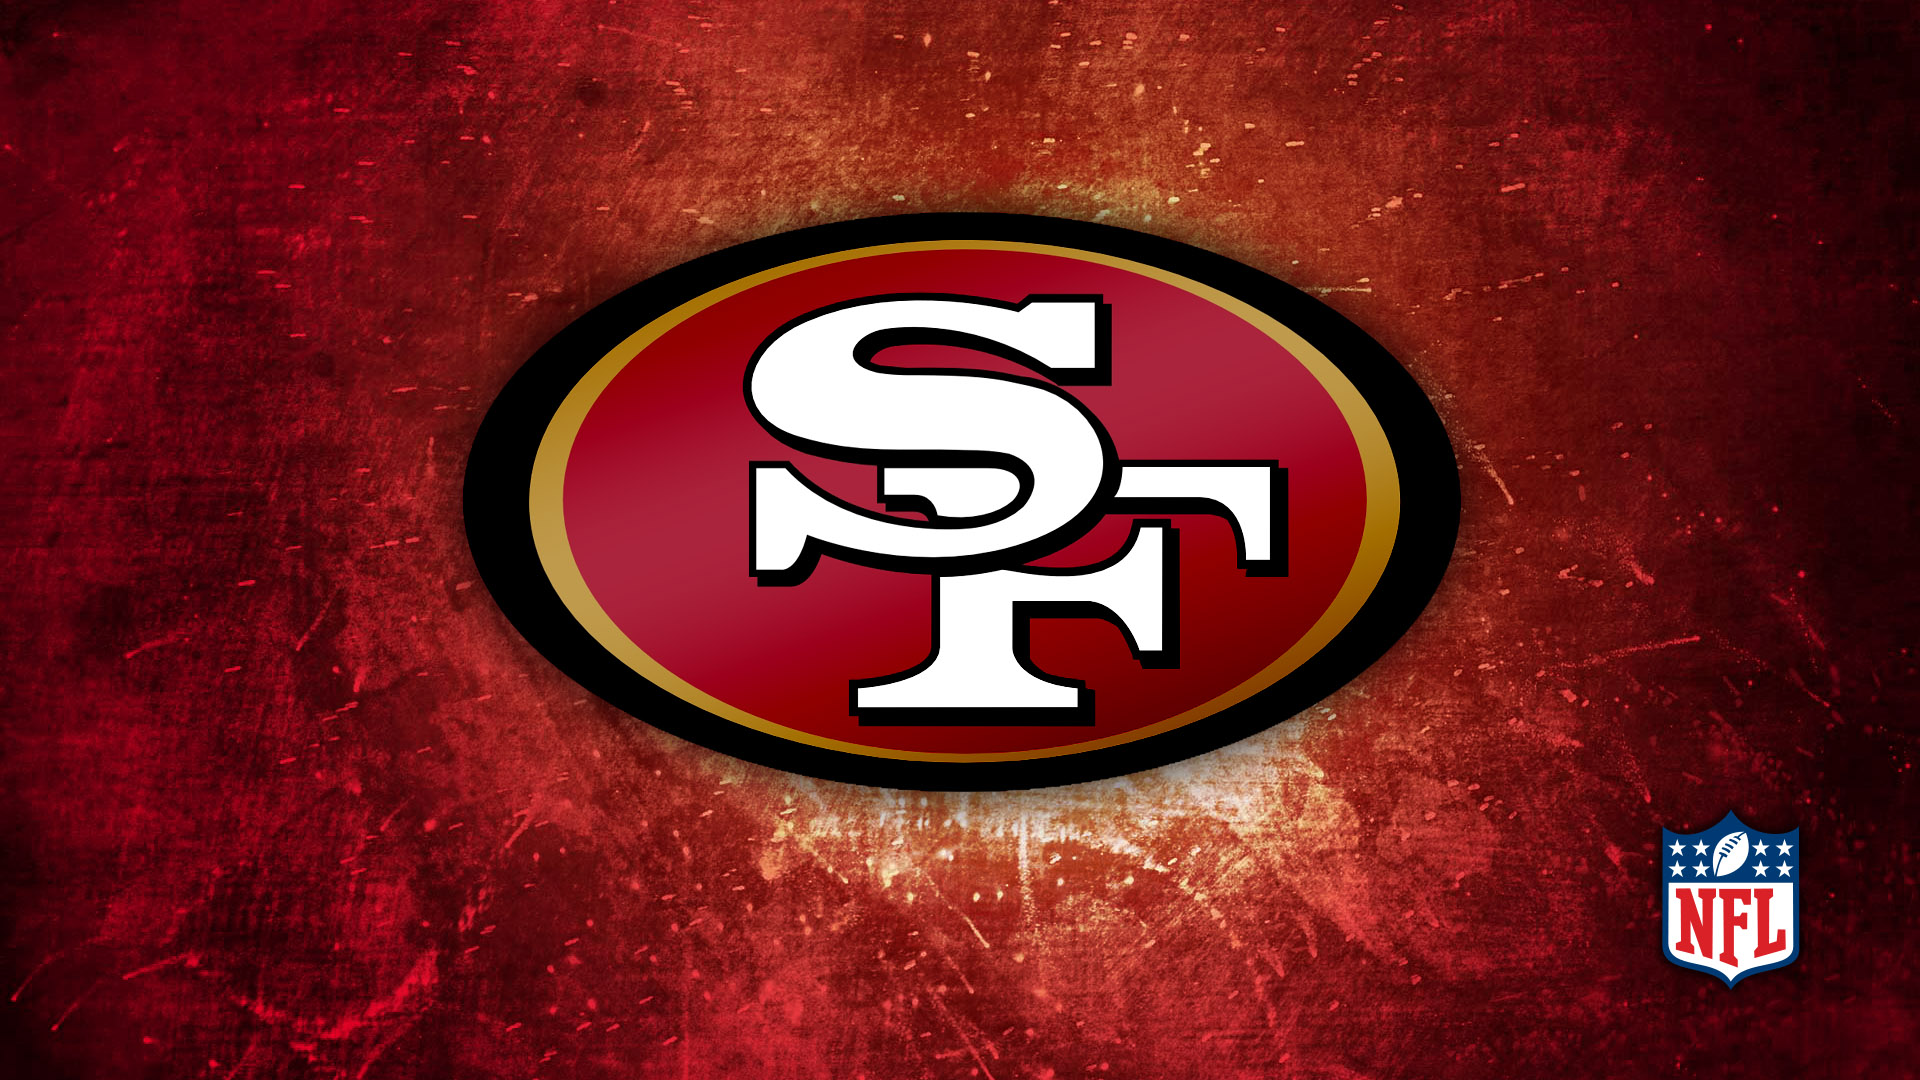 San Francisco 49ers HD background San Francisco 49ers wallpapers 1920x1080